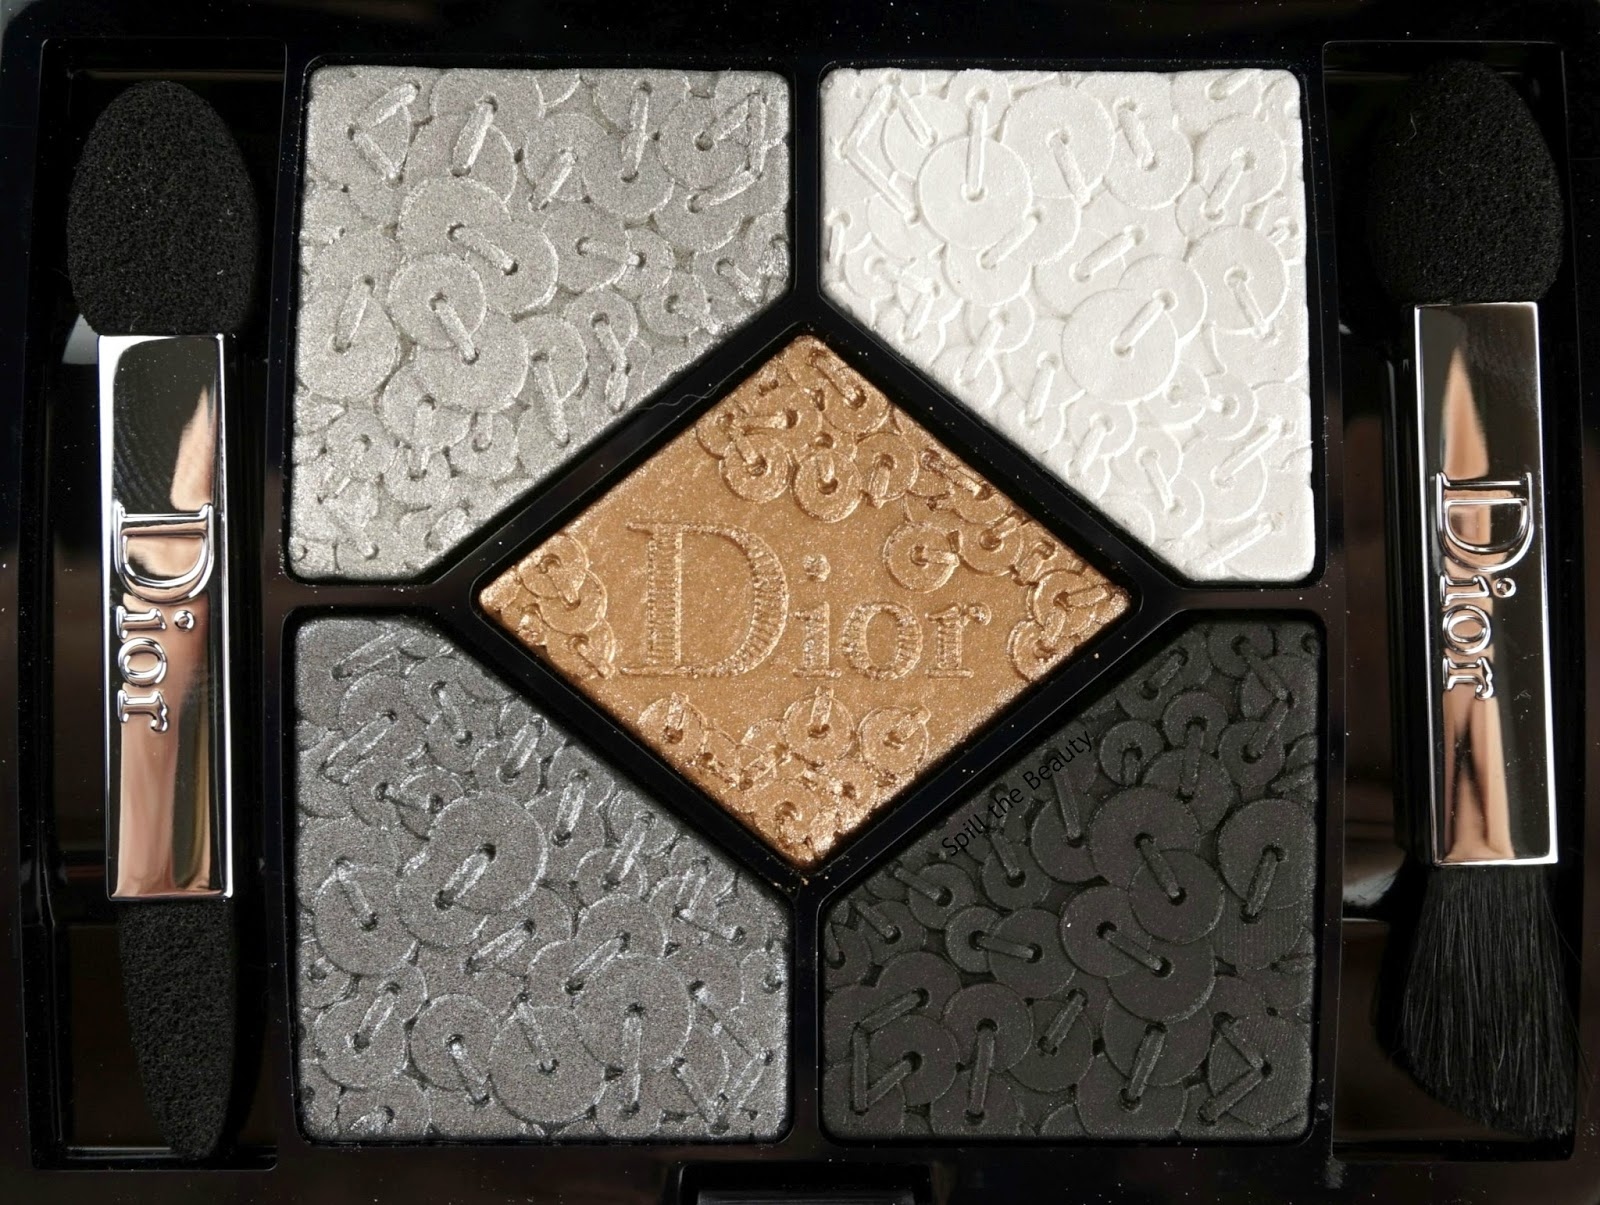 dior holiday makeup 2016 9 review swatch 5 couleurs splendor palette smoky sequins